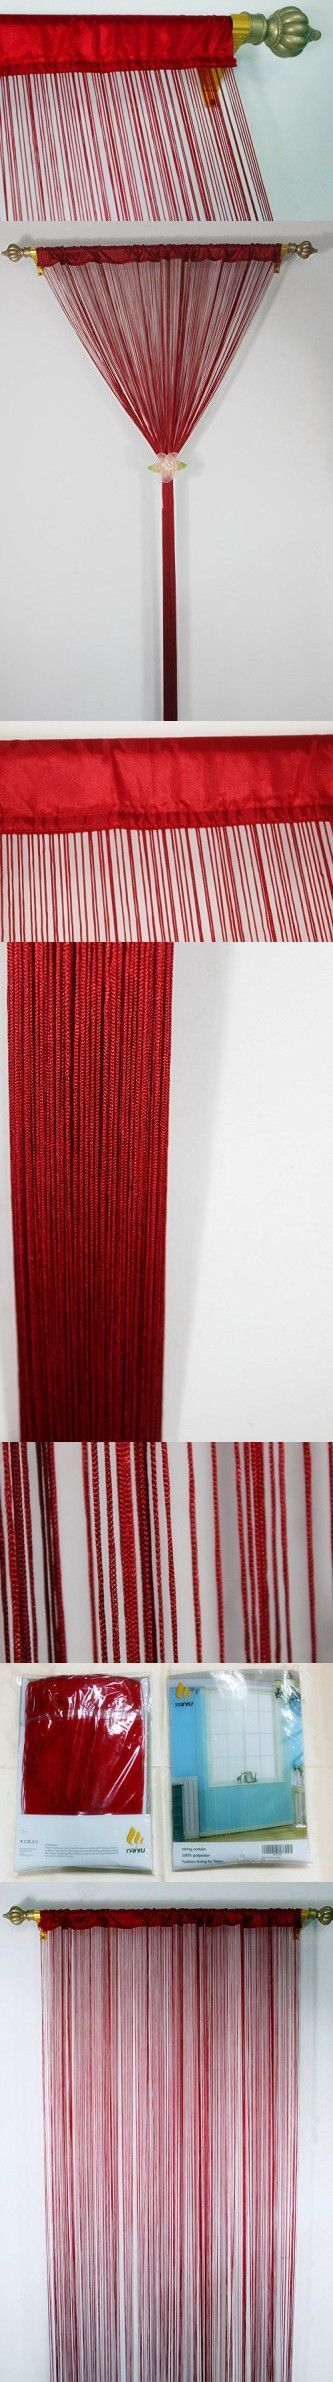 String curtain ideas - String Curtain Ideas Romantic Spaghetti String Curtain For Home Decor And Divider With Creative Stripe